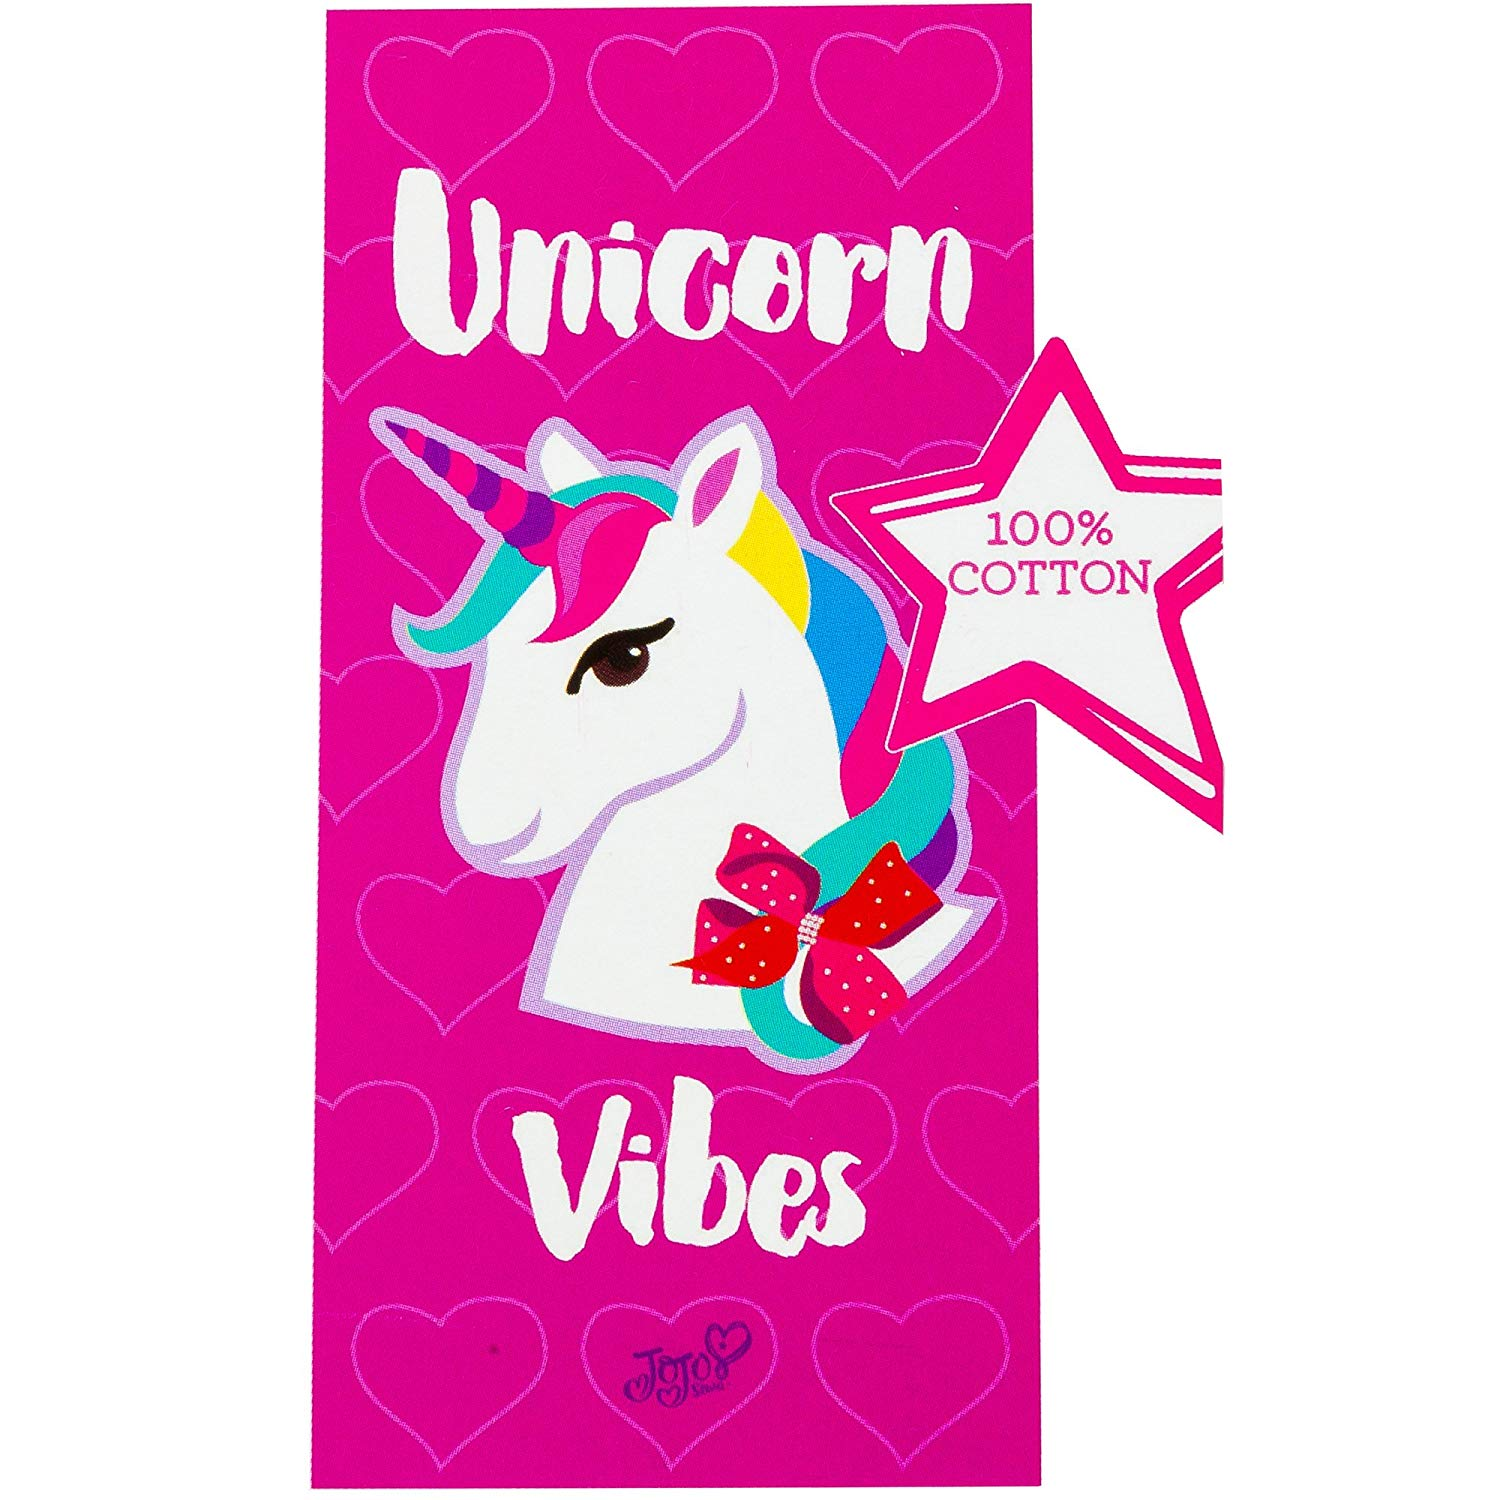 JoJo Siwa Unicorn Vibes Beach Towel 58 X 28 Inches | Summer Beach & Pool Towel 100% Soft Cotton Fabric | Nickelodeon Character Beach Towel (Unicorn)